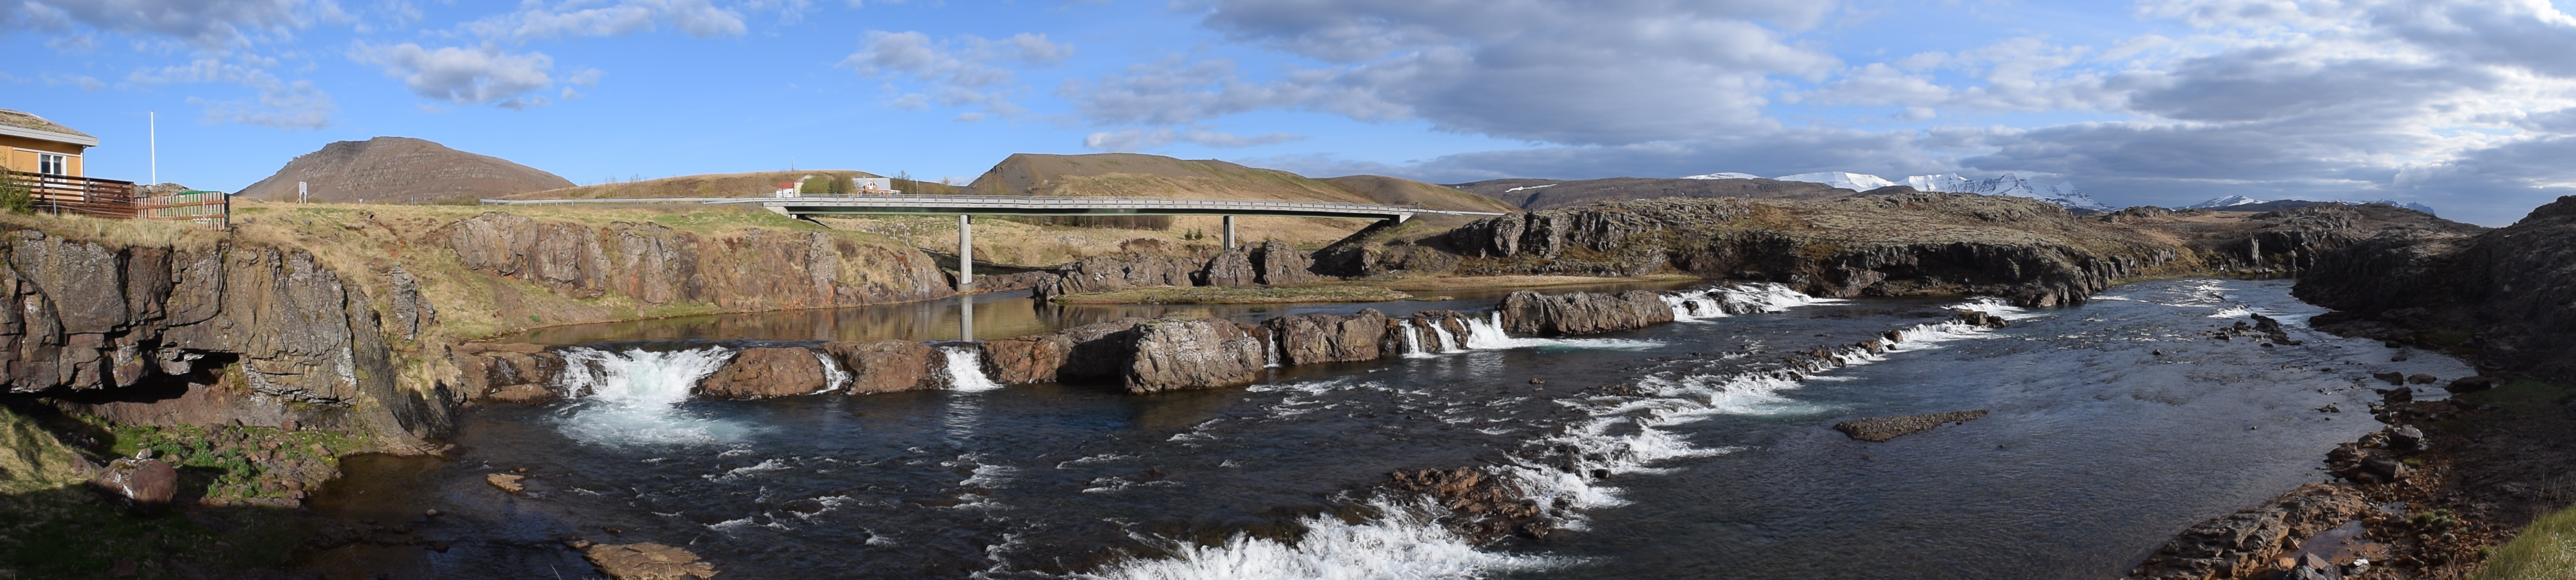 Photo of waterfalls and a bridge in Iceland